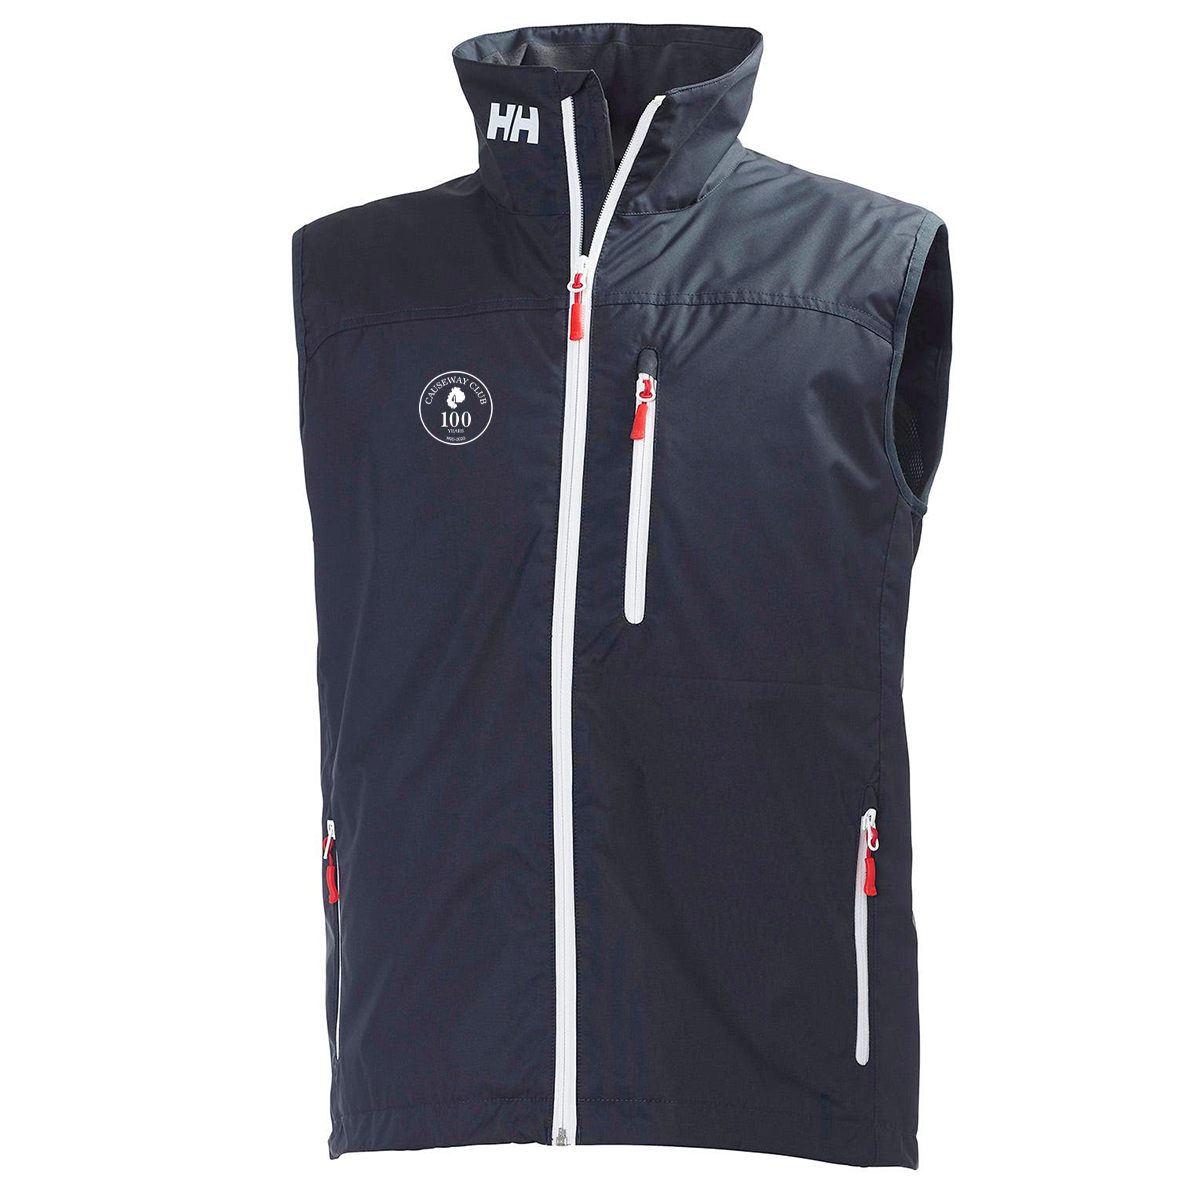 Causeway Club - Men's Helly Hansen Crew Vest